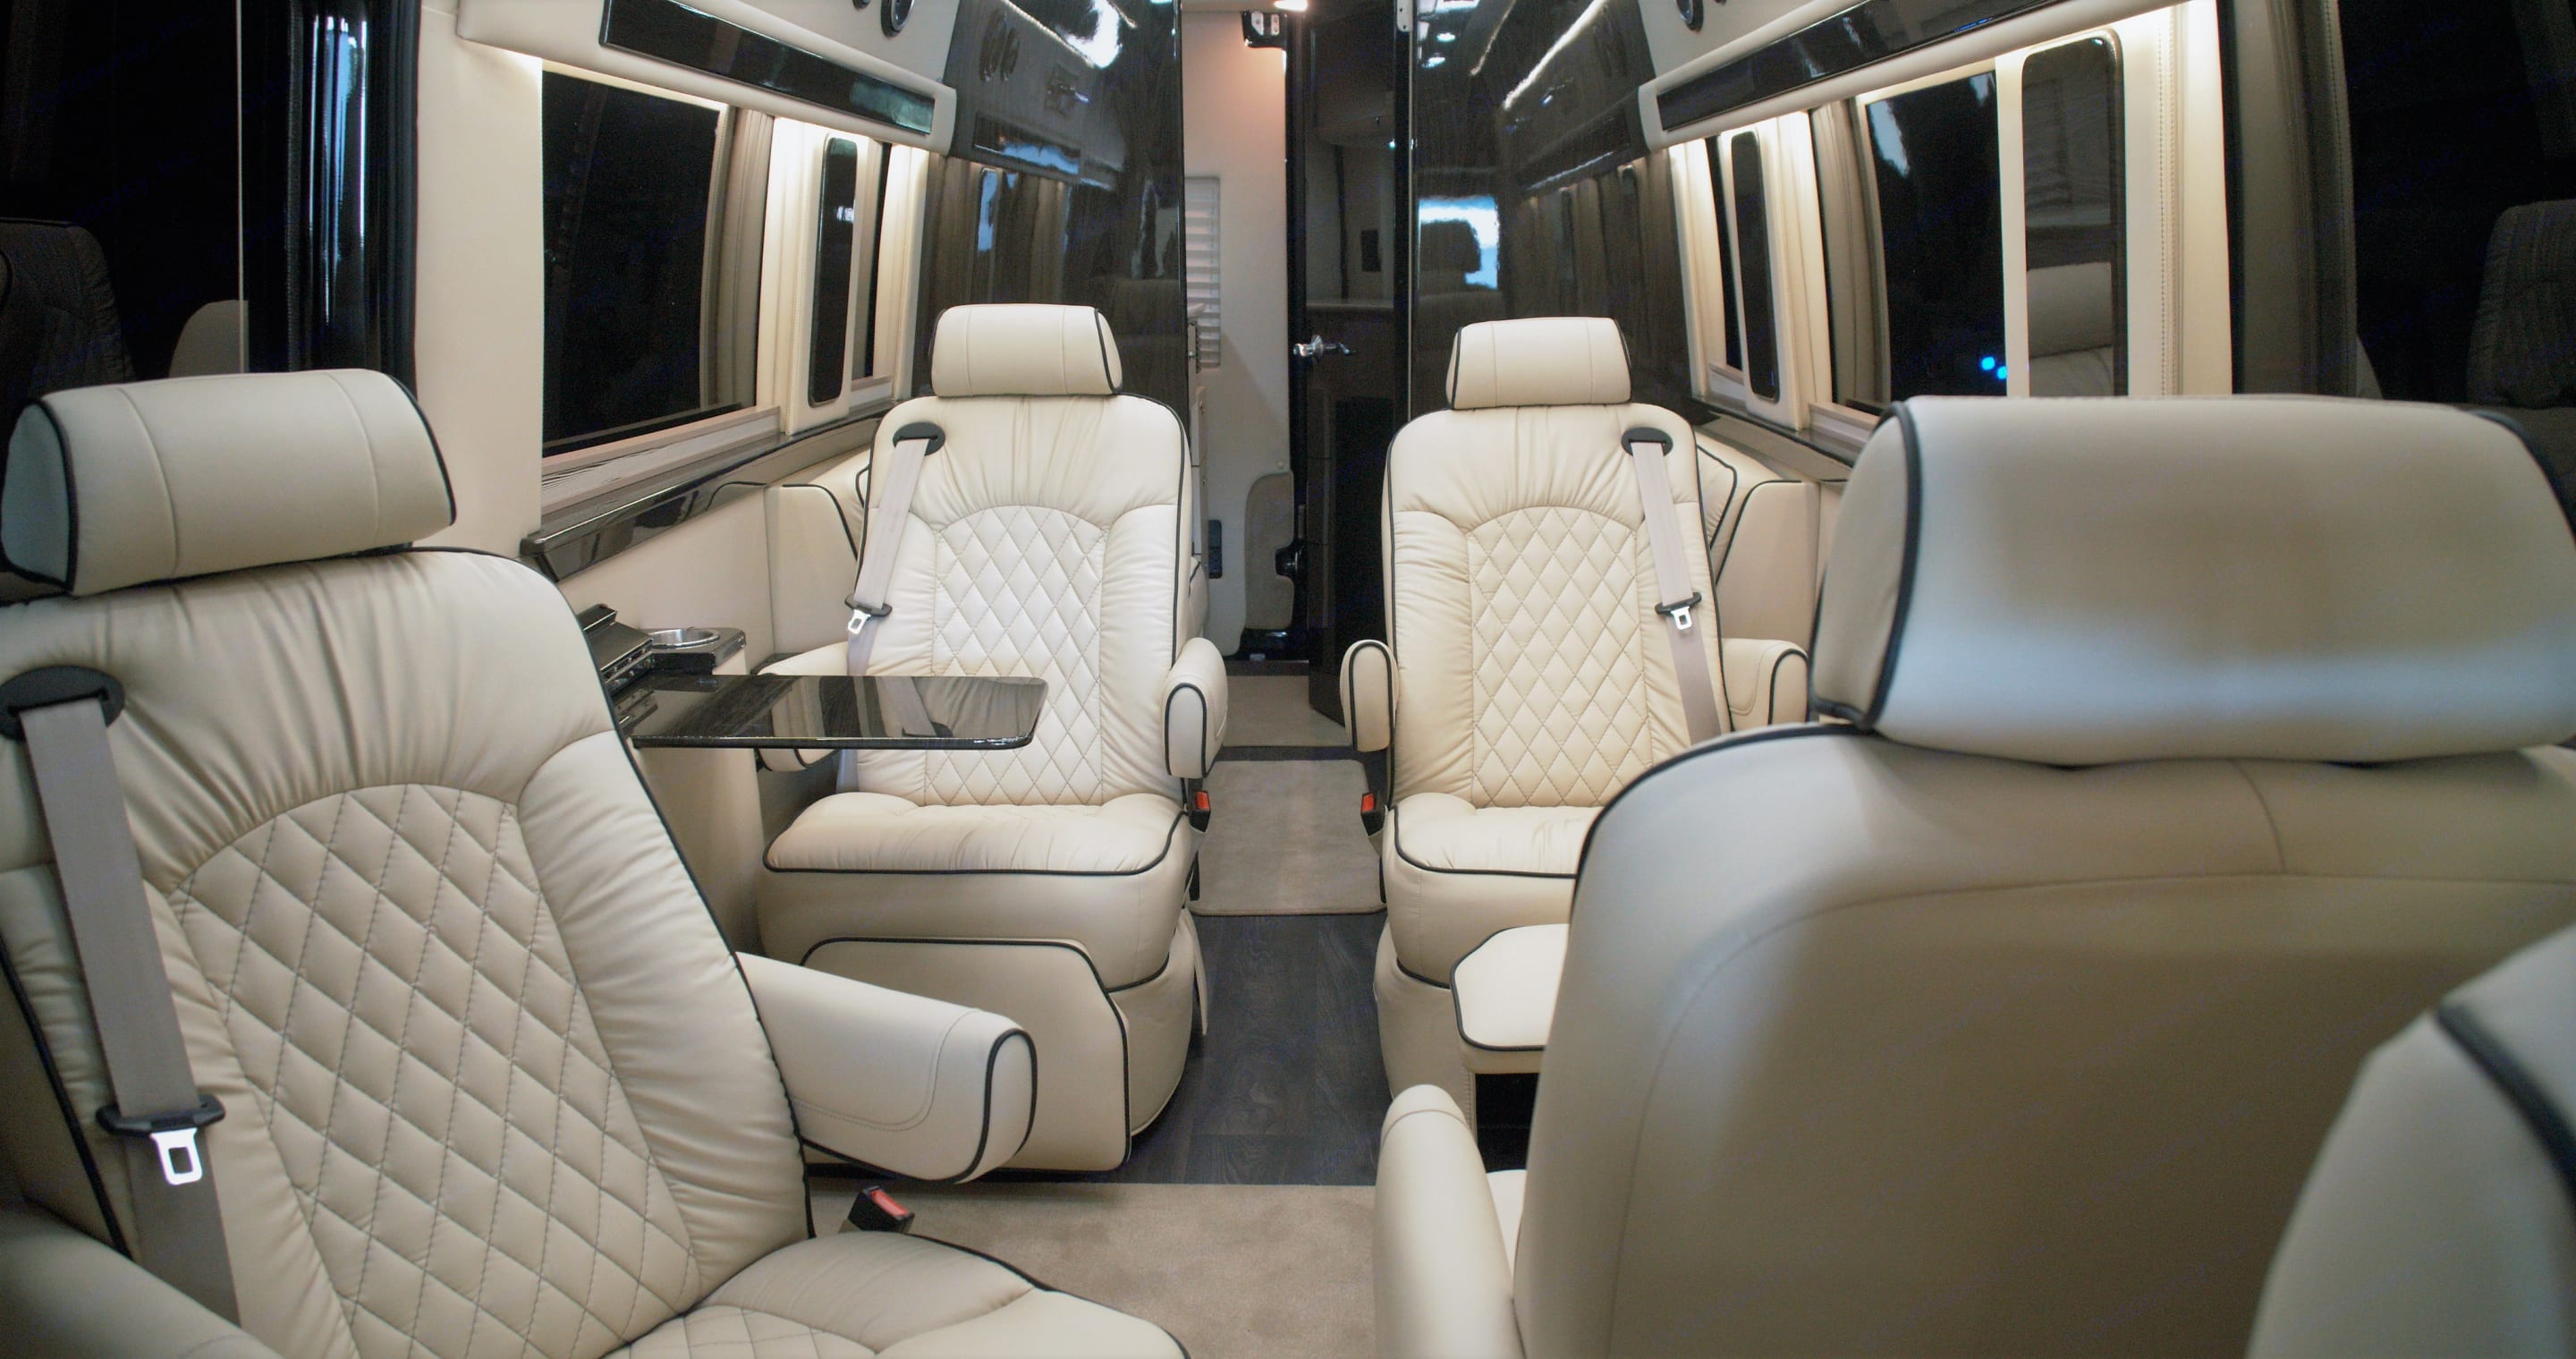 Giving you more options for business and pleasure, the 2nd row seats turn 360 degrees so you can have a meeting, play games or lay flat for +2 beds.. Ultimate Toys Traveler 2022